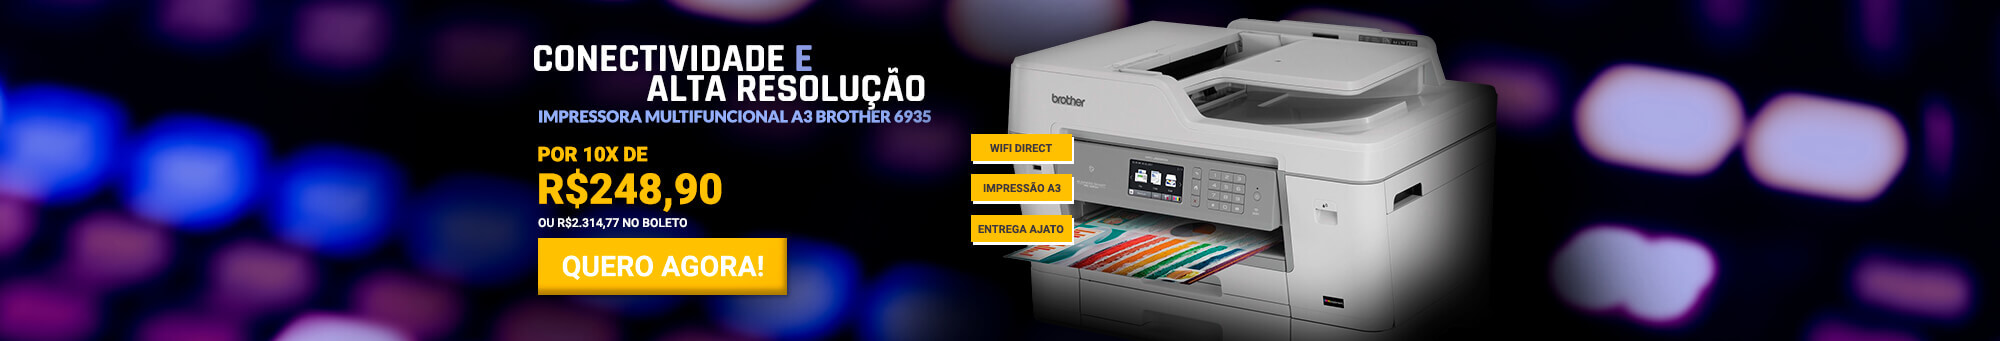 Multifuncional Brother 6935